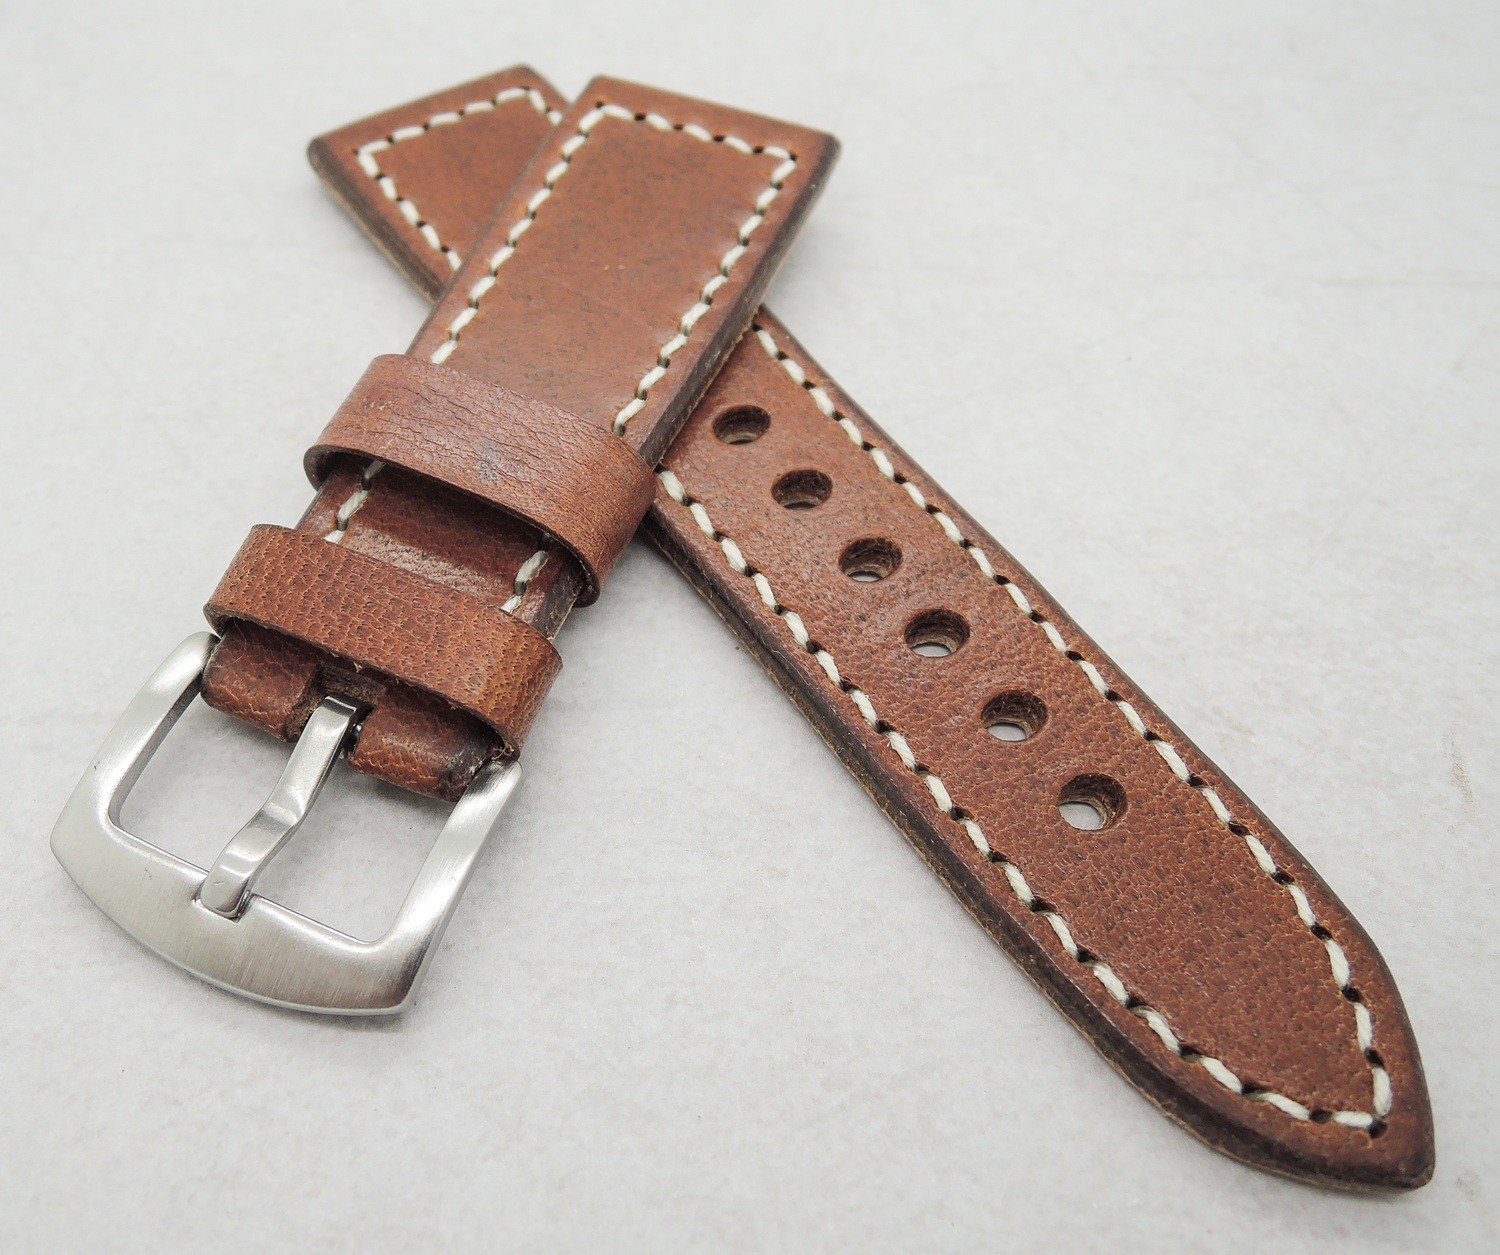 26mm wide Swiss ammo strap (22mm at the buckle)